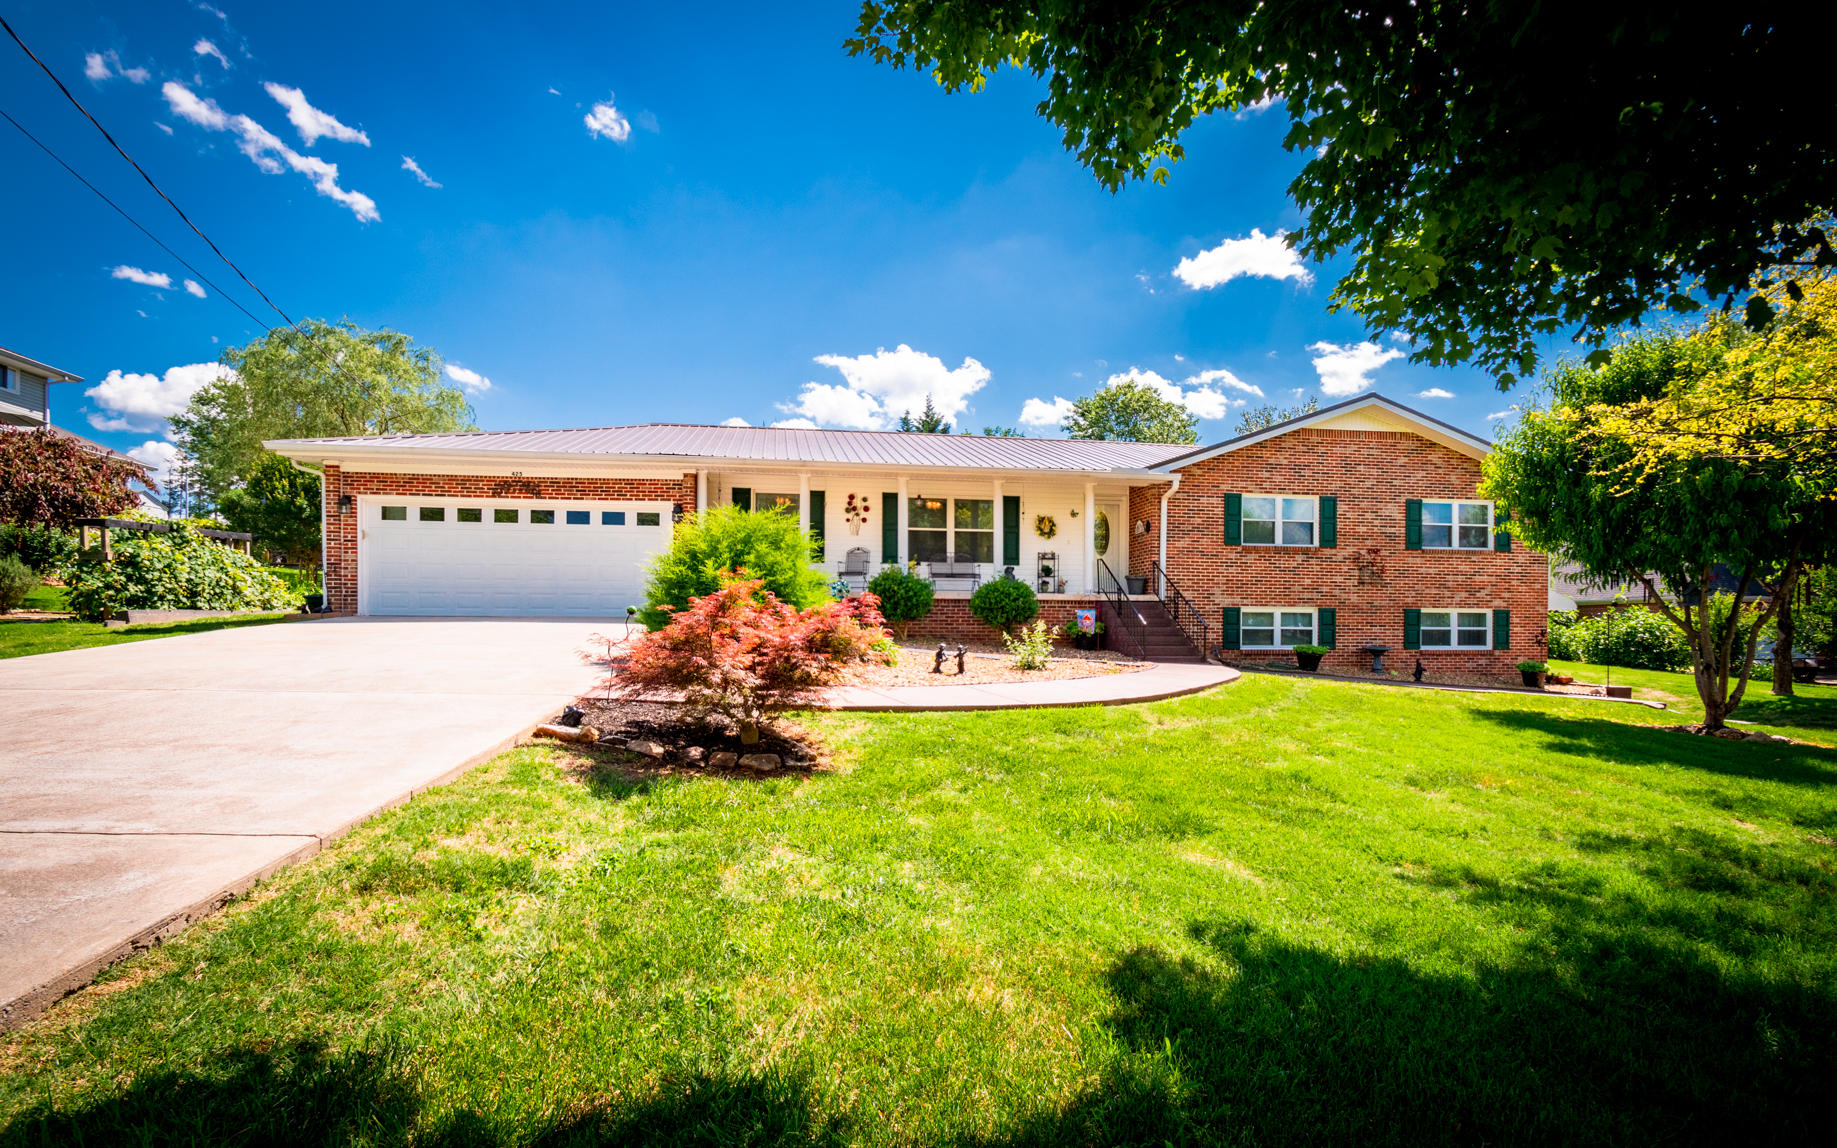 425 Nw 26th St, Cleveland, TN 37312